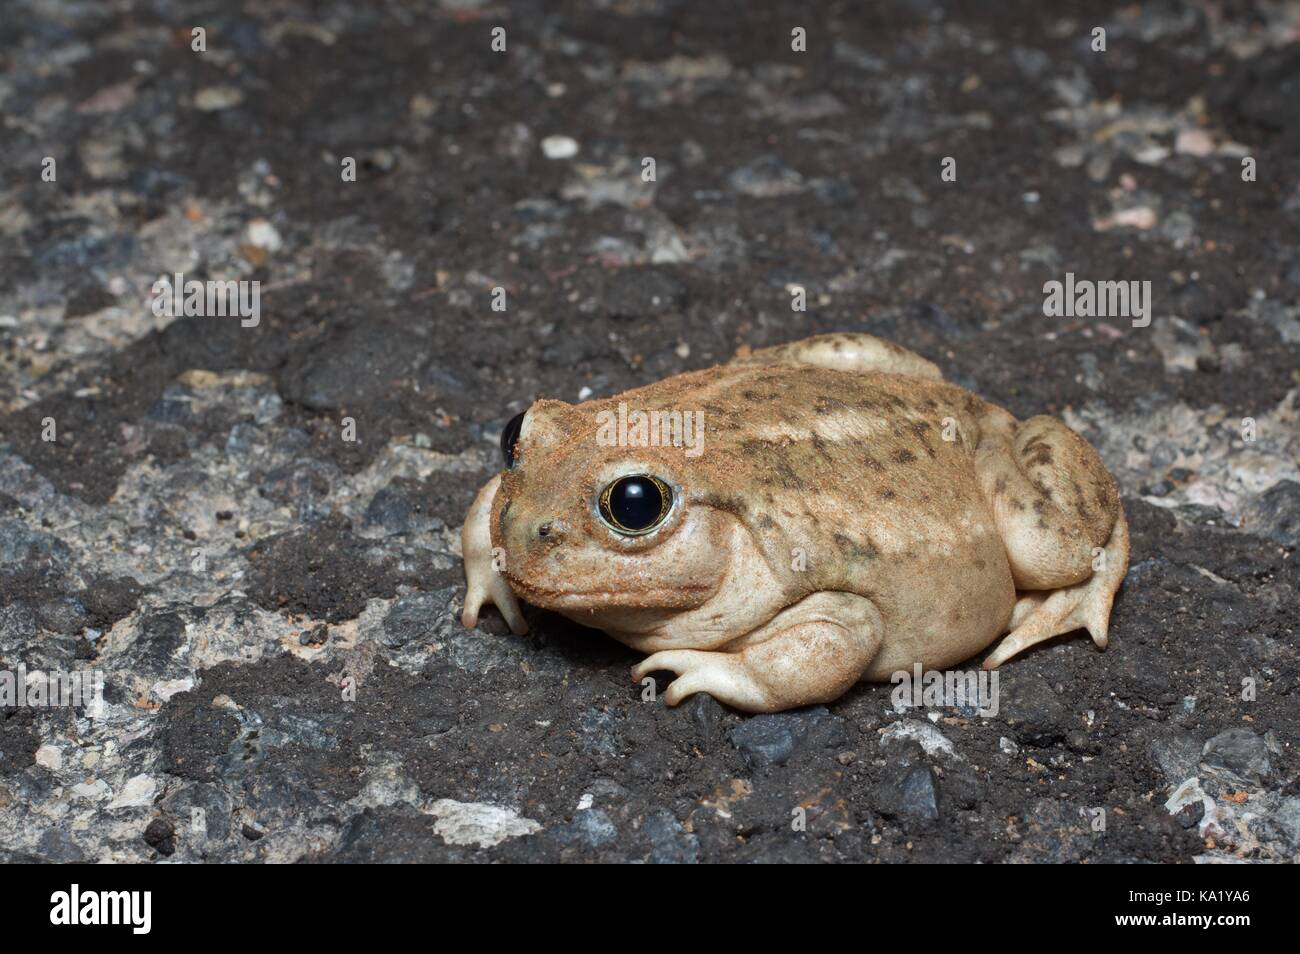 A Great Basin Toad (Spea intermontana) on the road at night in Grand Staircase - Escalante National Monument in Stock Photo